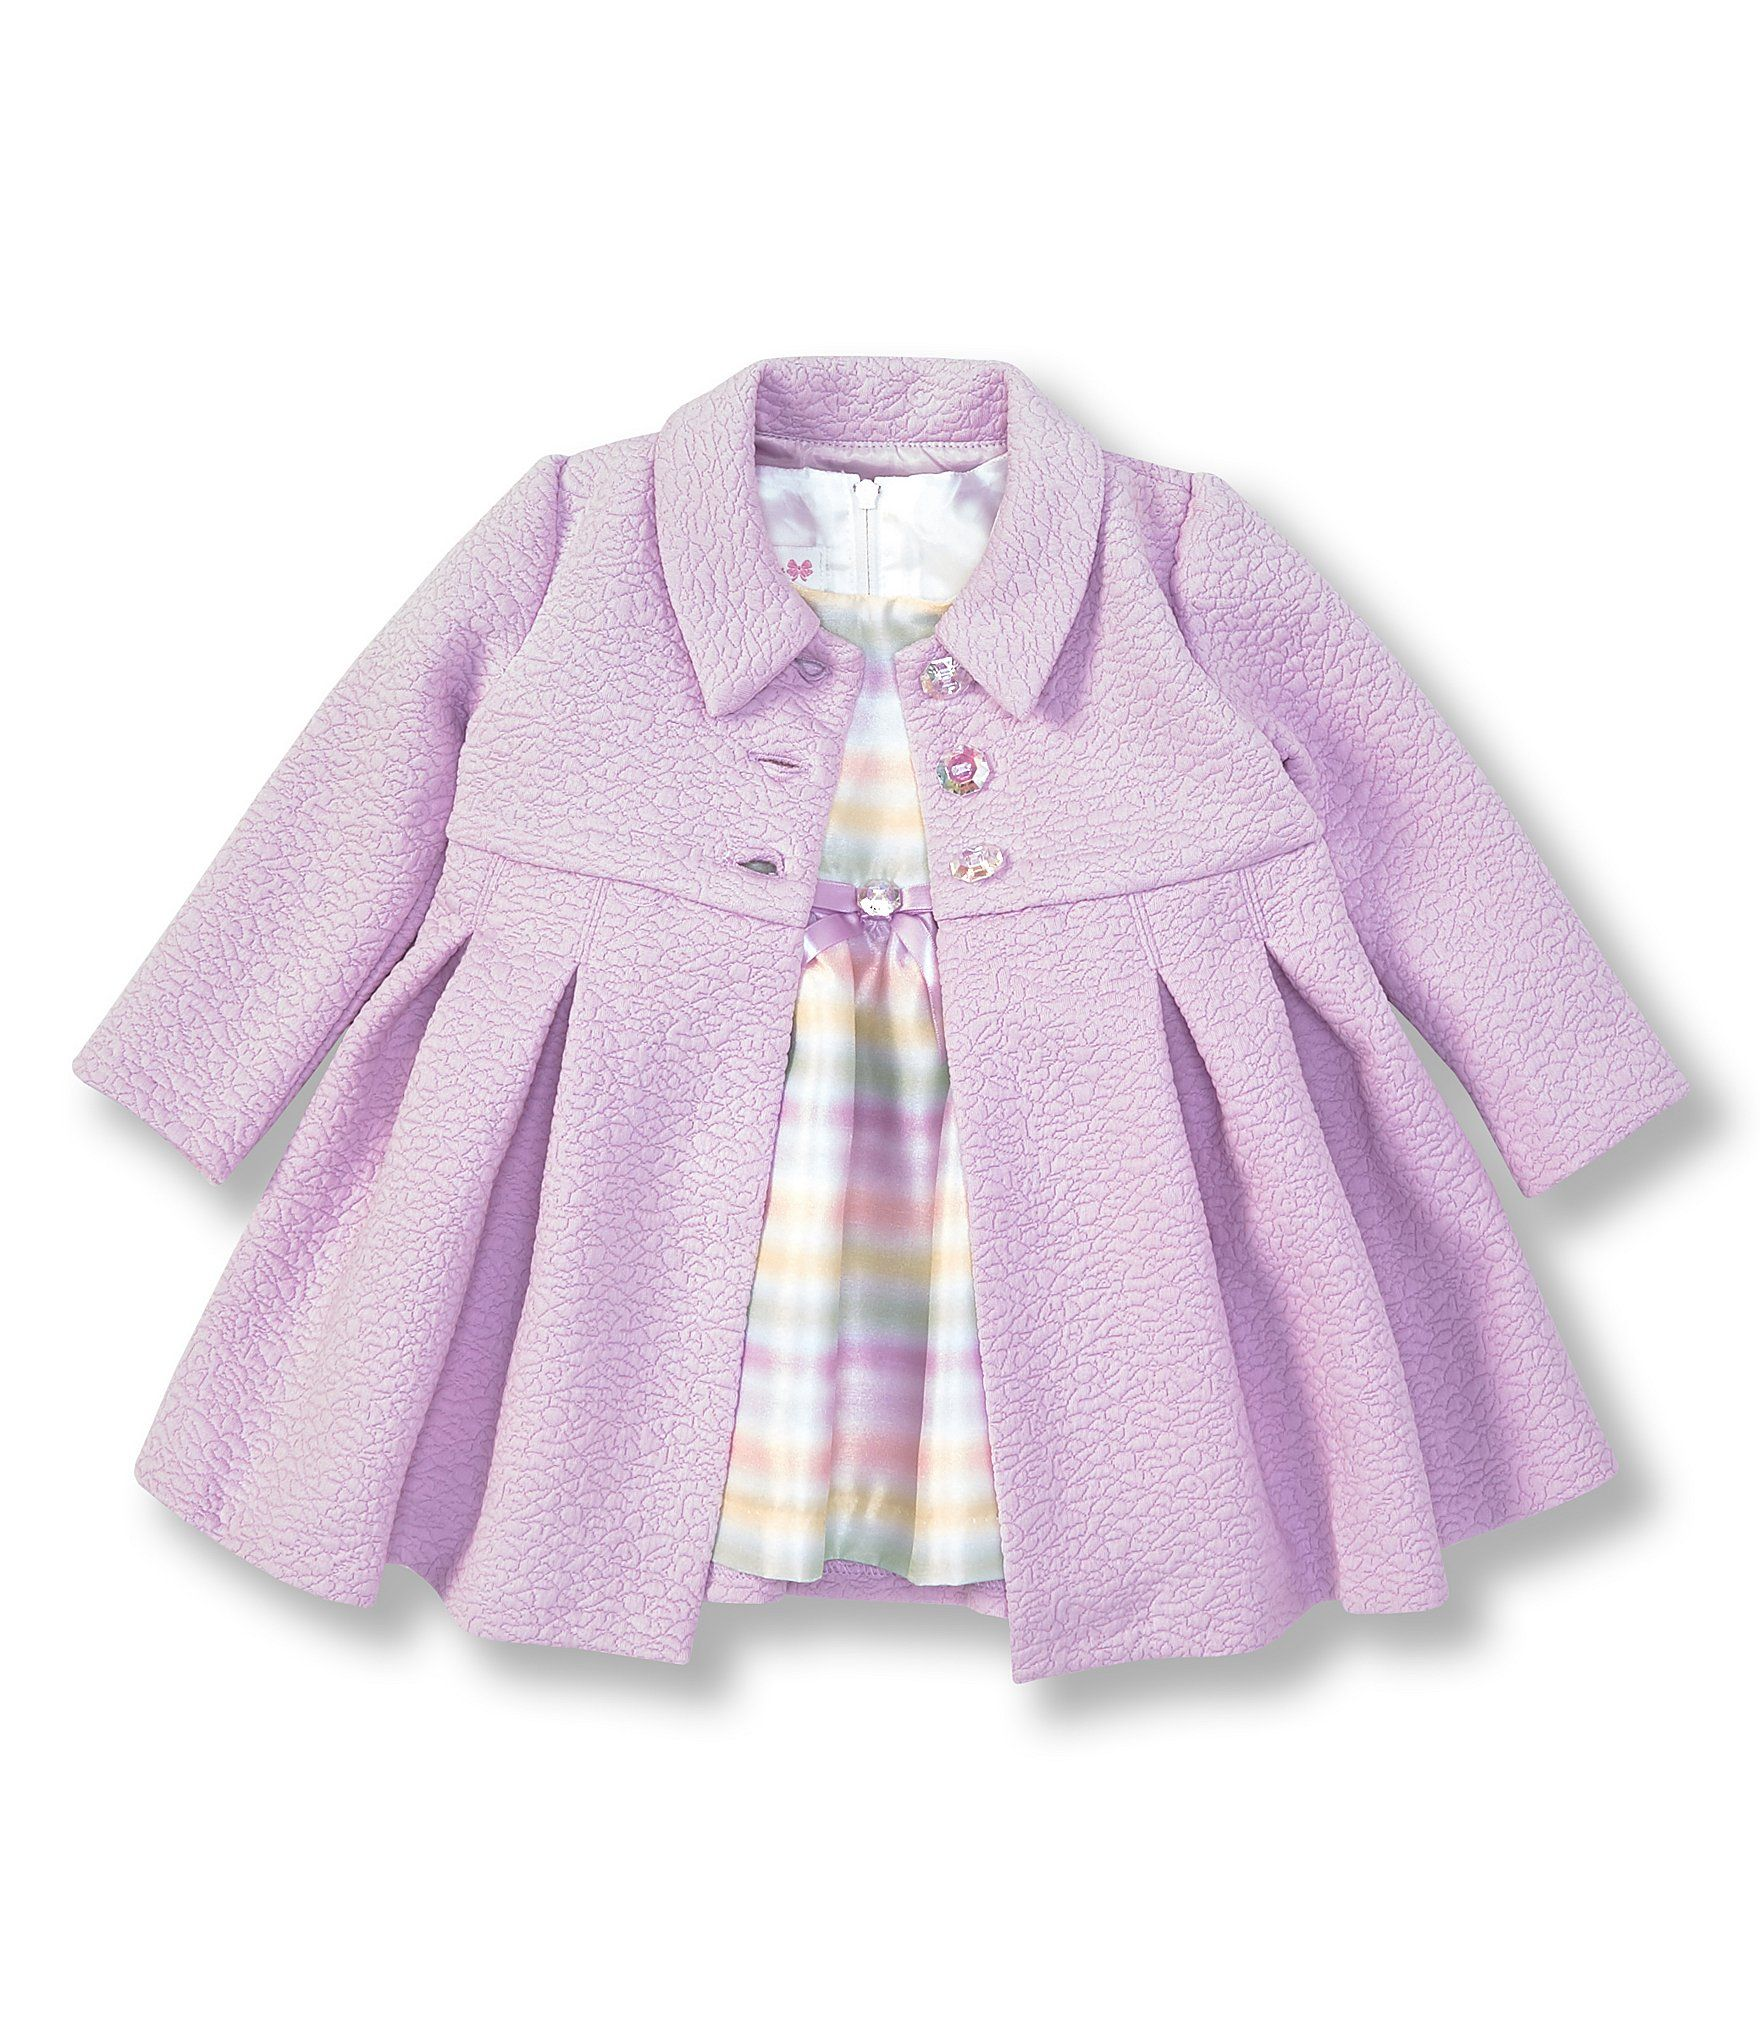 Photo of Bonnie Jean Baby Girls Newborn-24 Months Textured Coat & Stripe Shantung Fit-And-Flare Dress | Dillard's